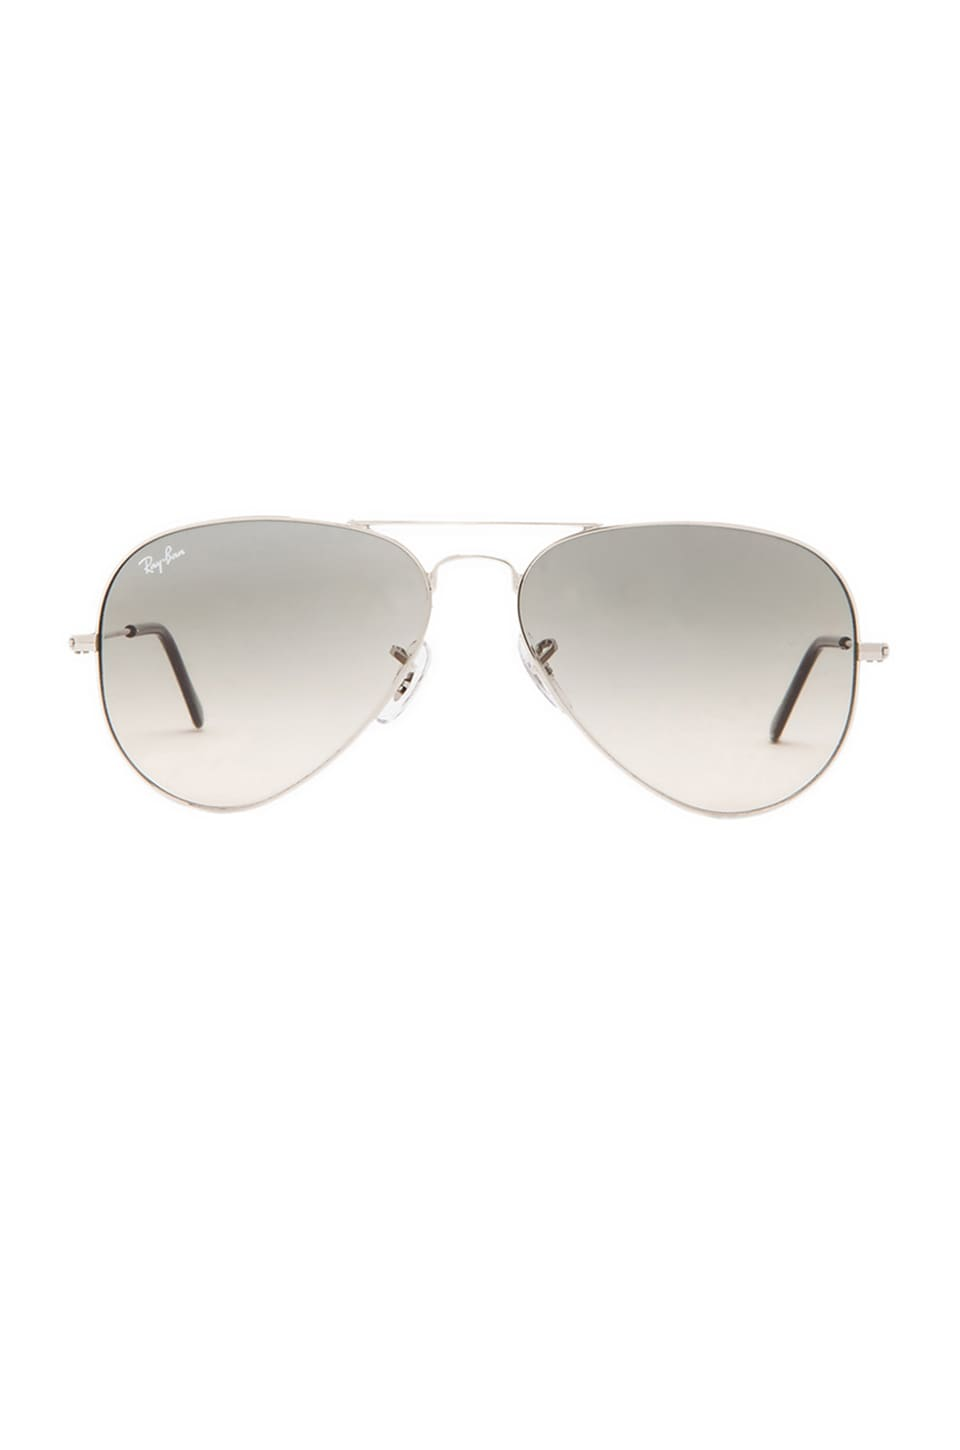 Ray-Ban Aviator in Light Grey Gradient